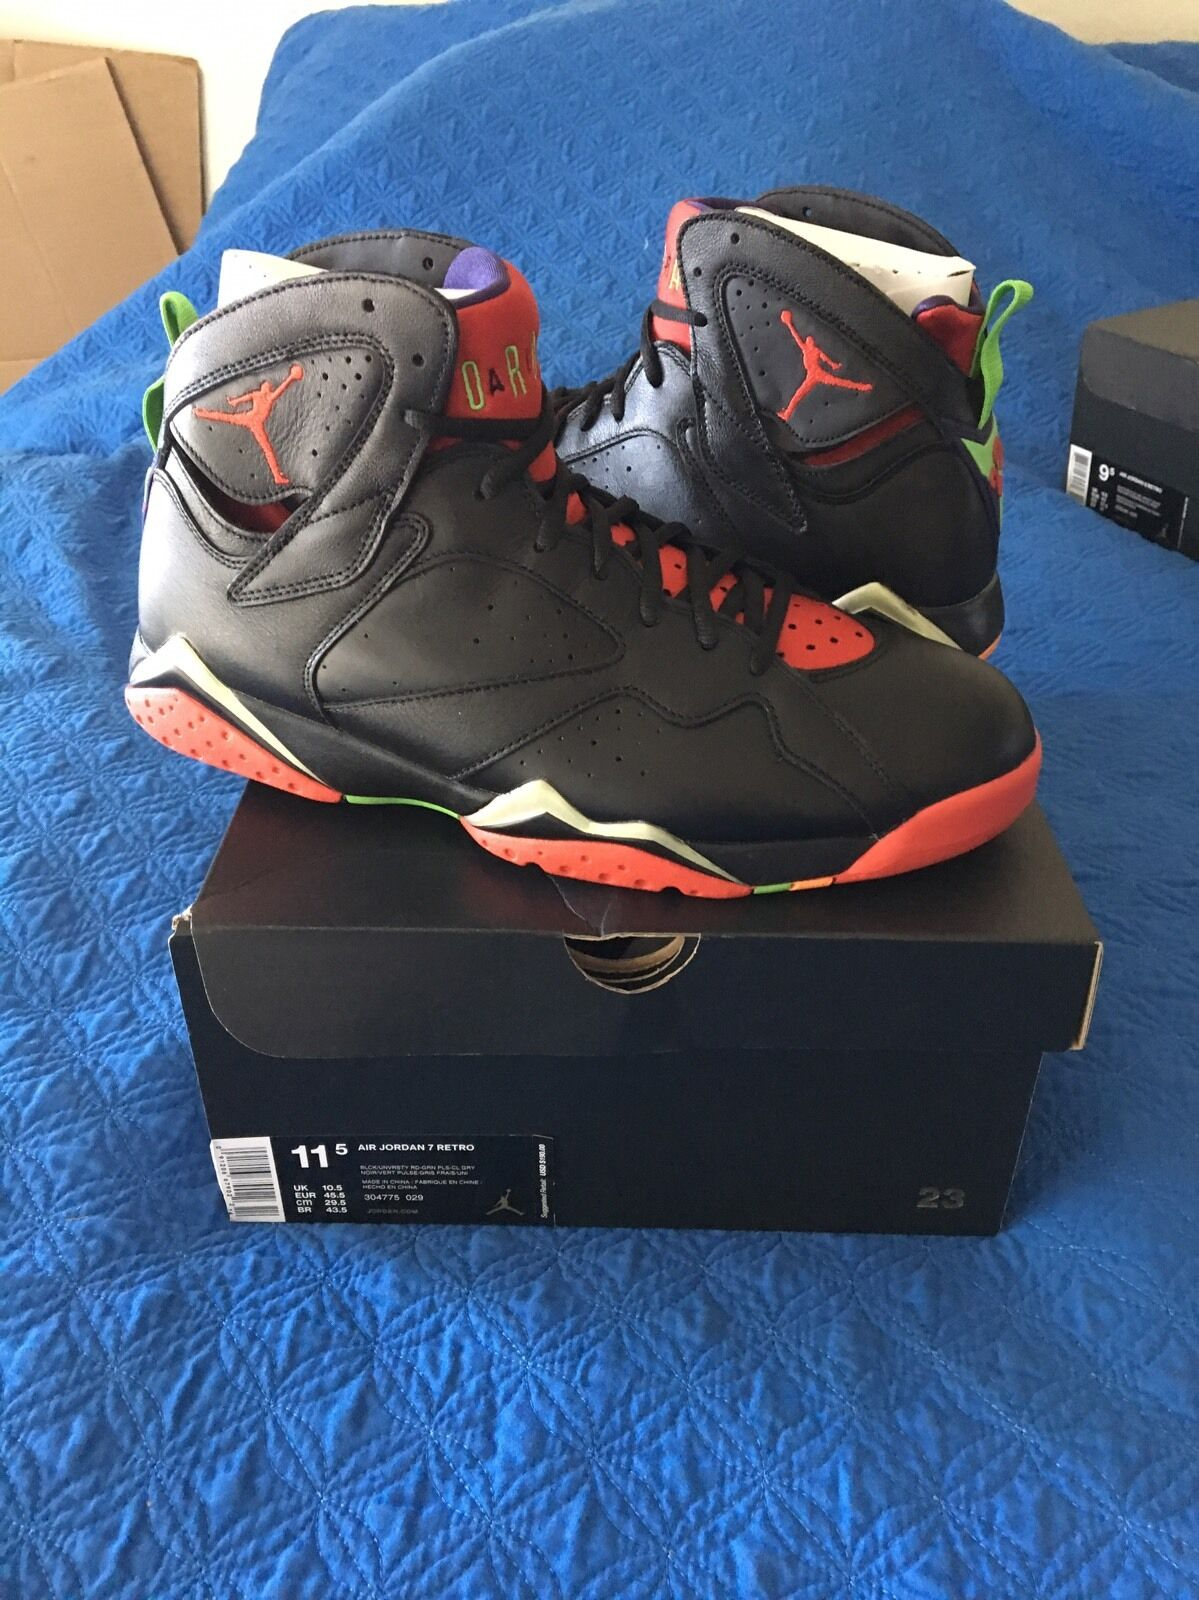 Nike Air Jordan Retro 7  VII Size 11.5  marvin the martian DS